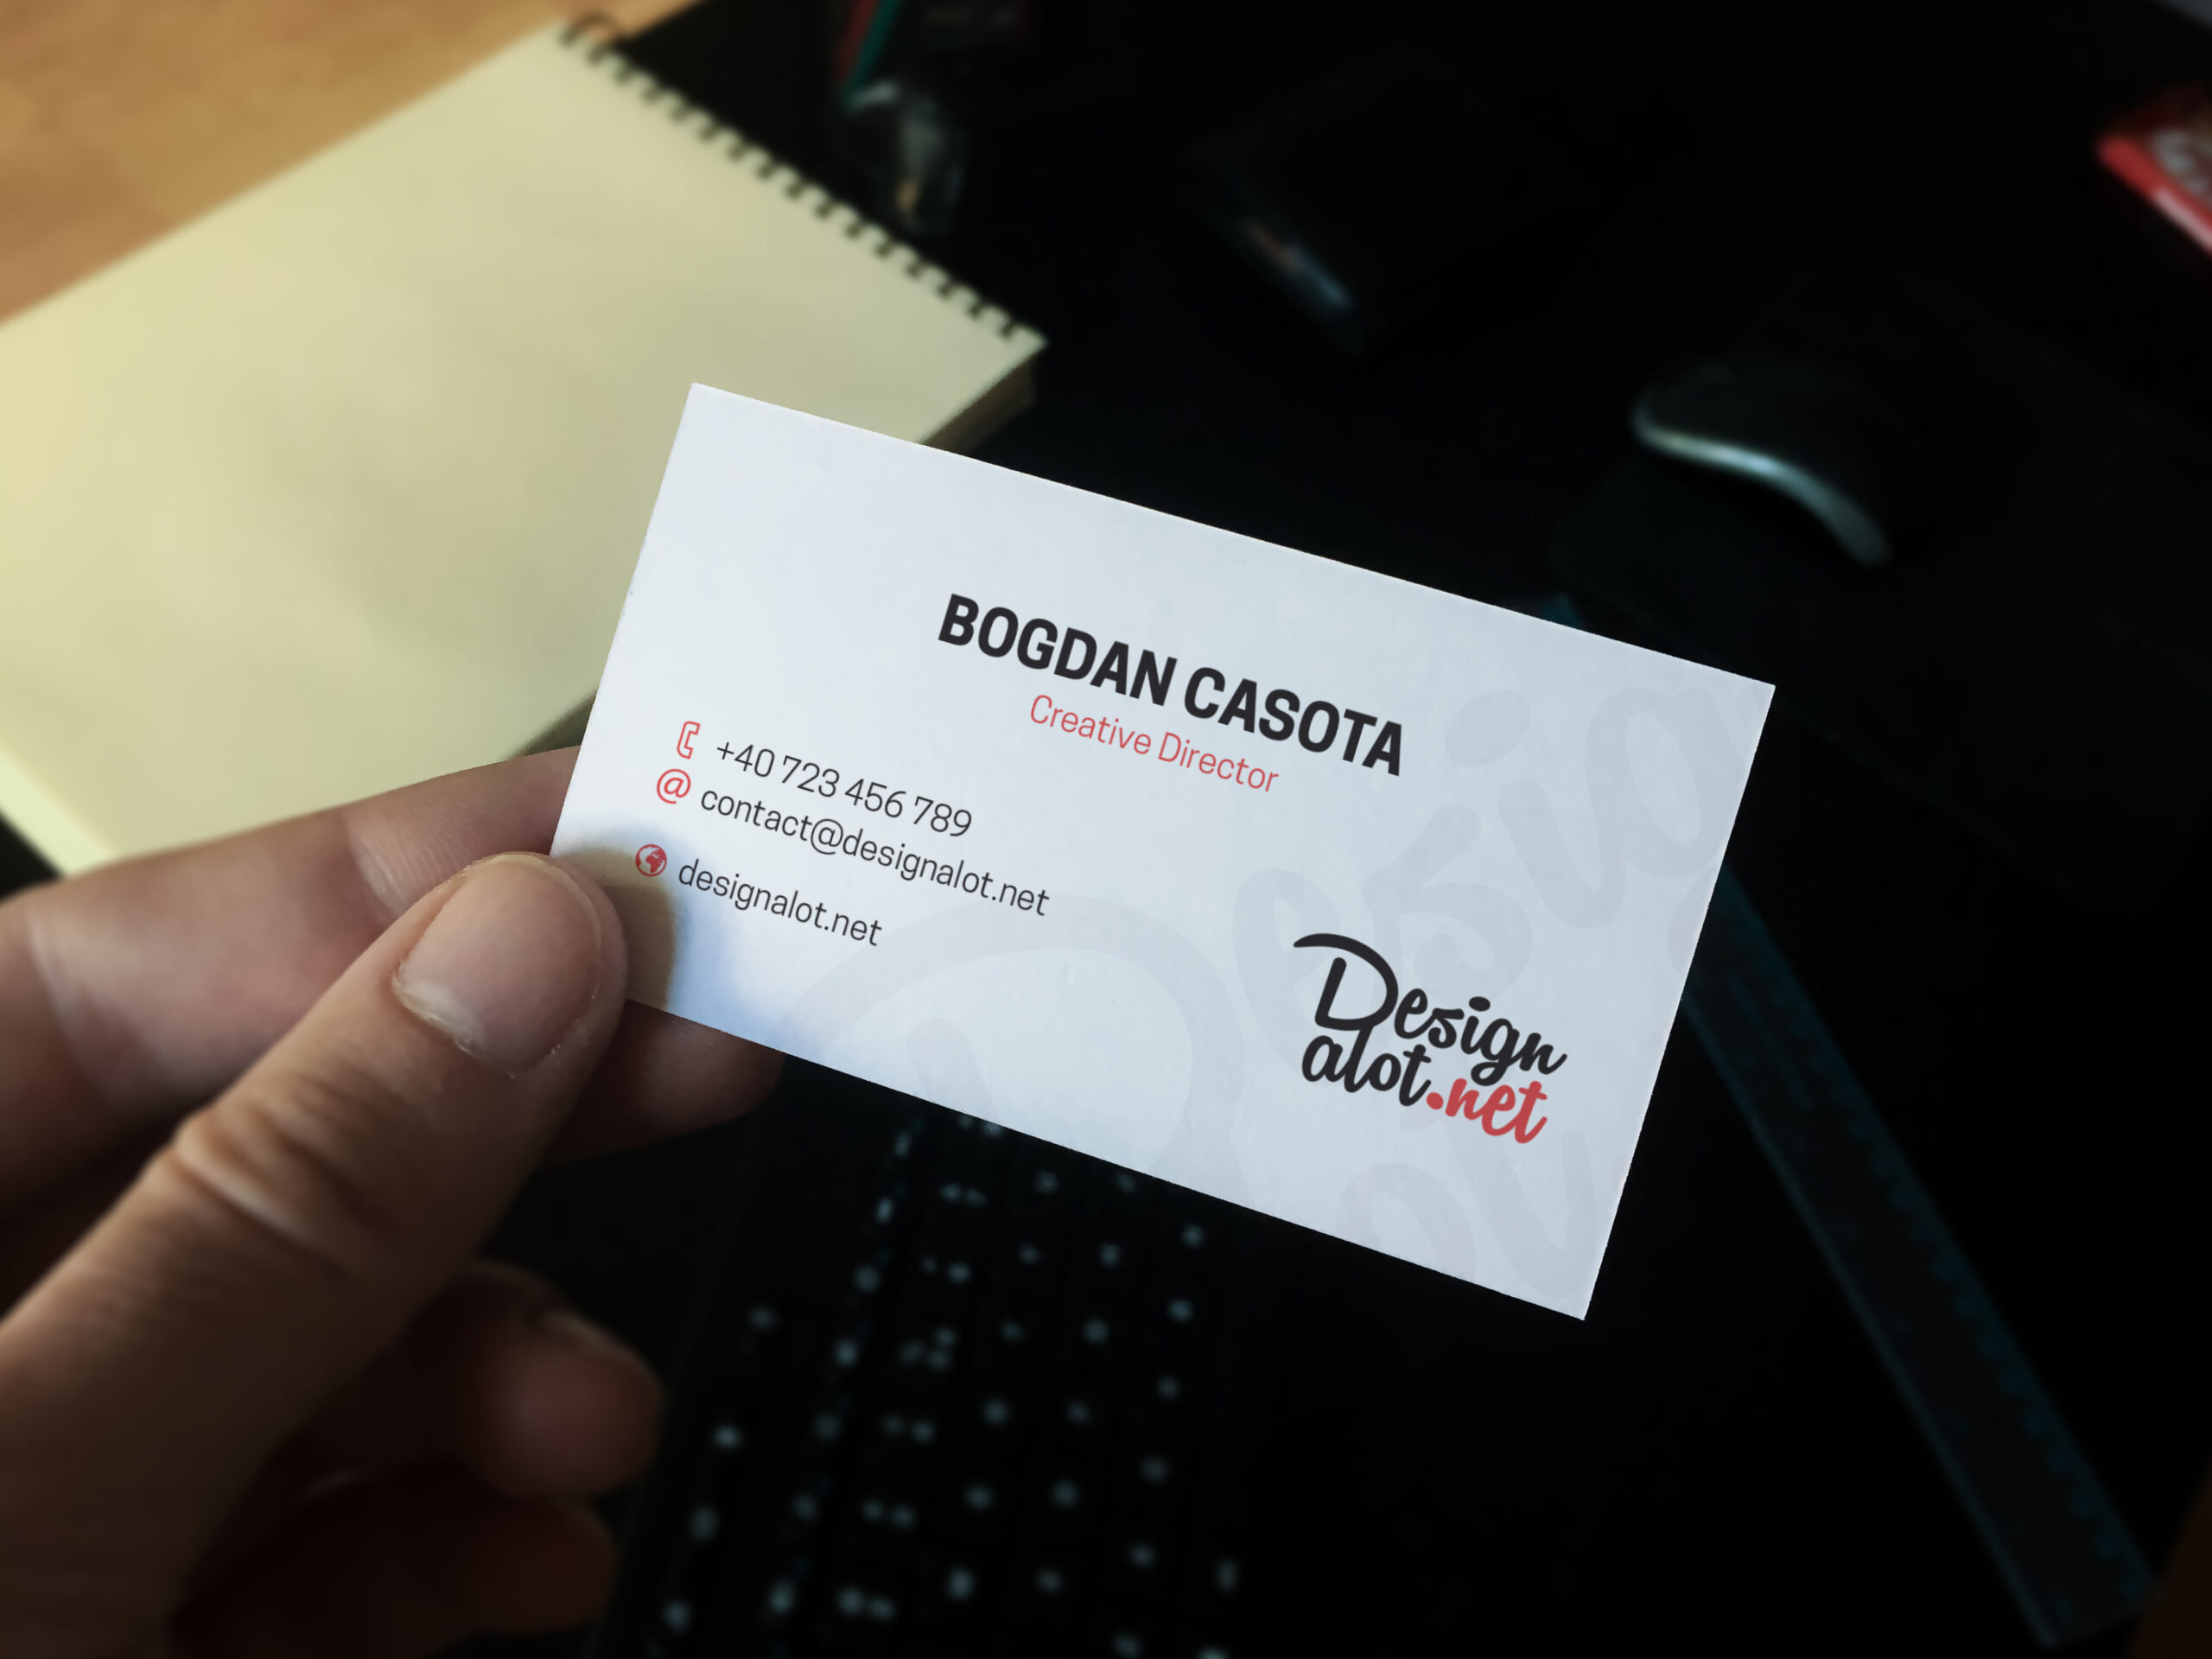 Realistic Business Card in Hand Mockup FREE Sample